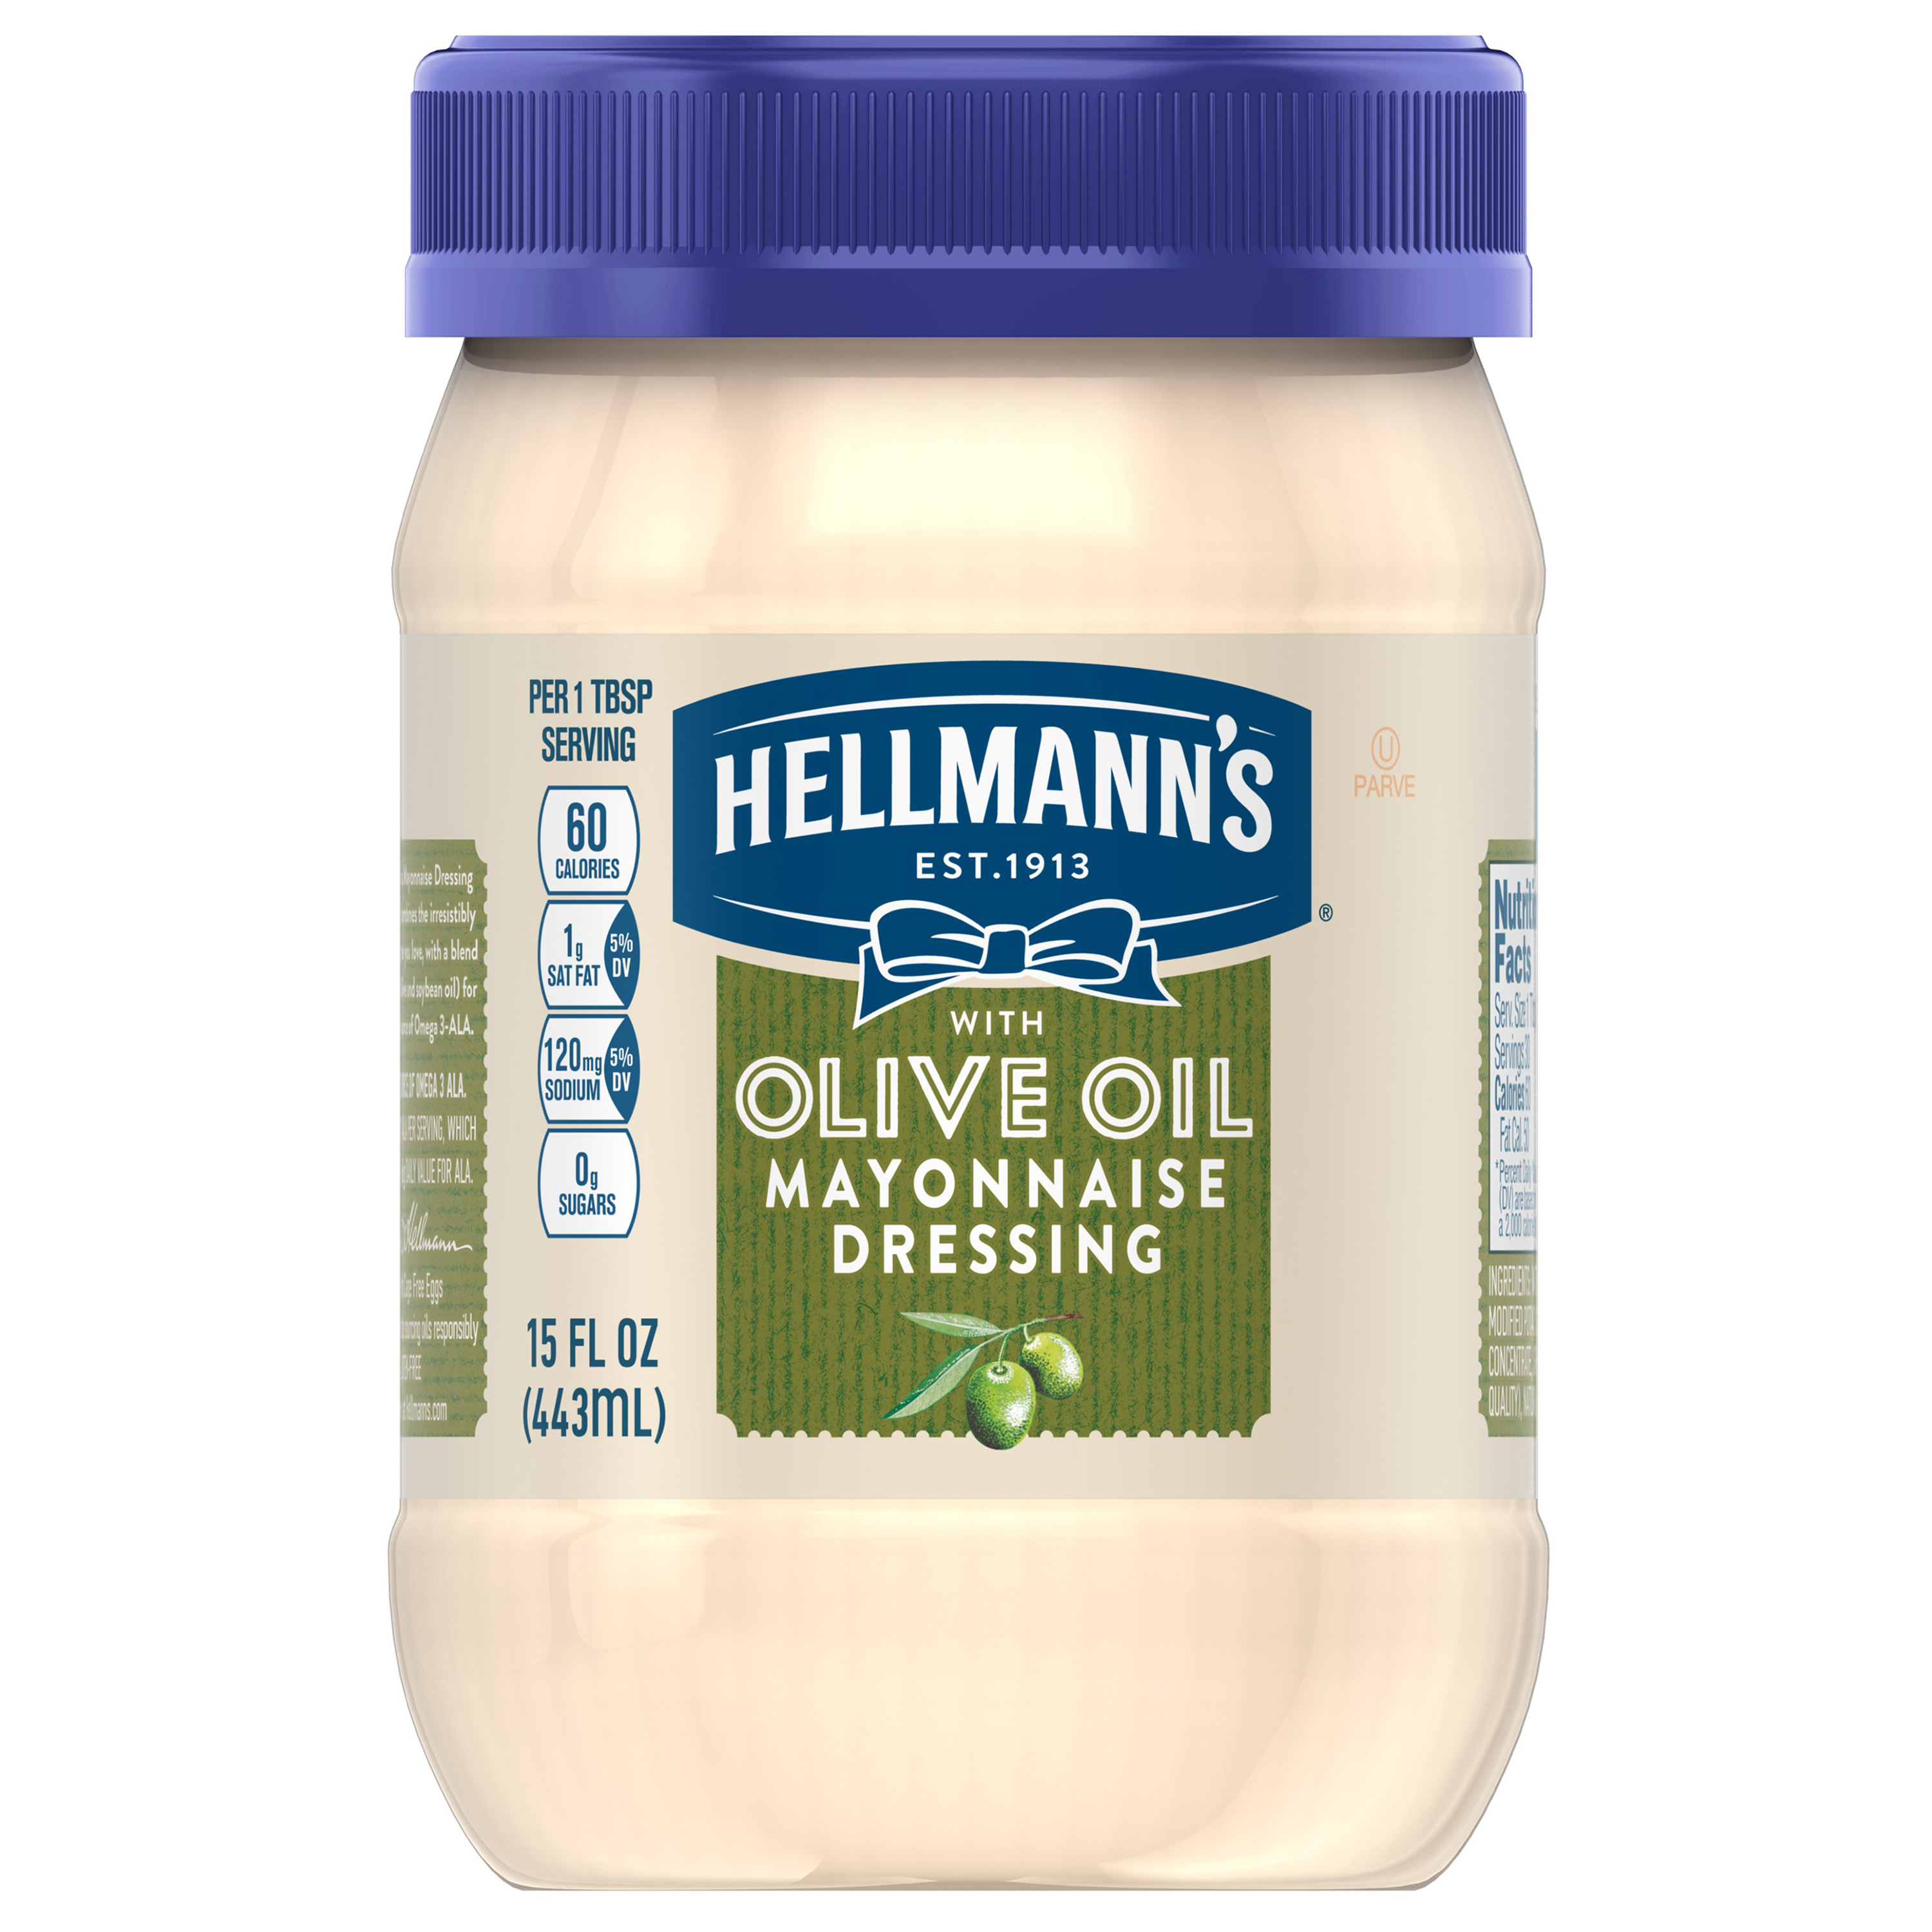 Hellmann's with Olive Oil Mayonnaise Dressing, 15 oz